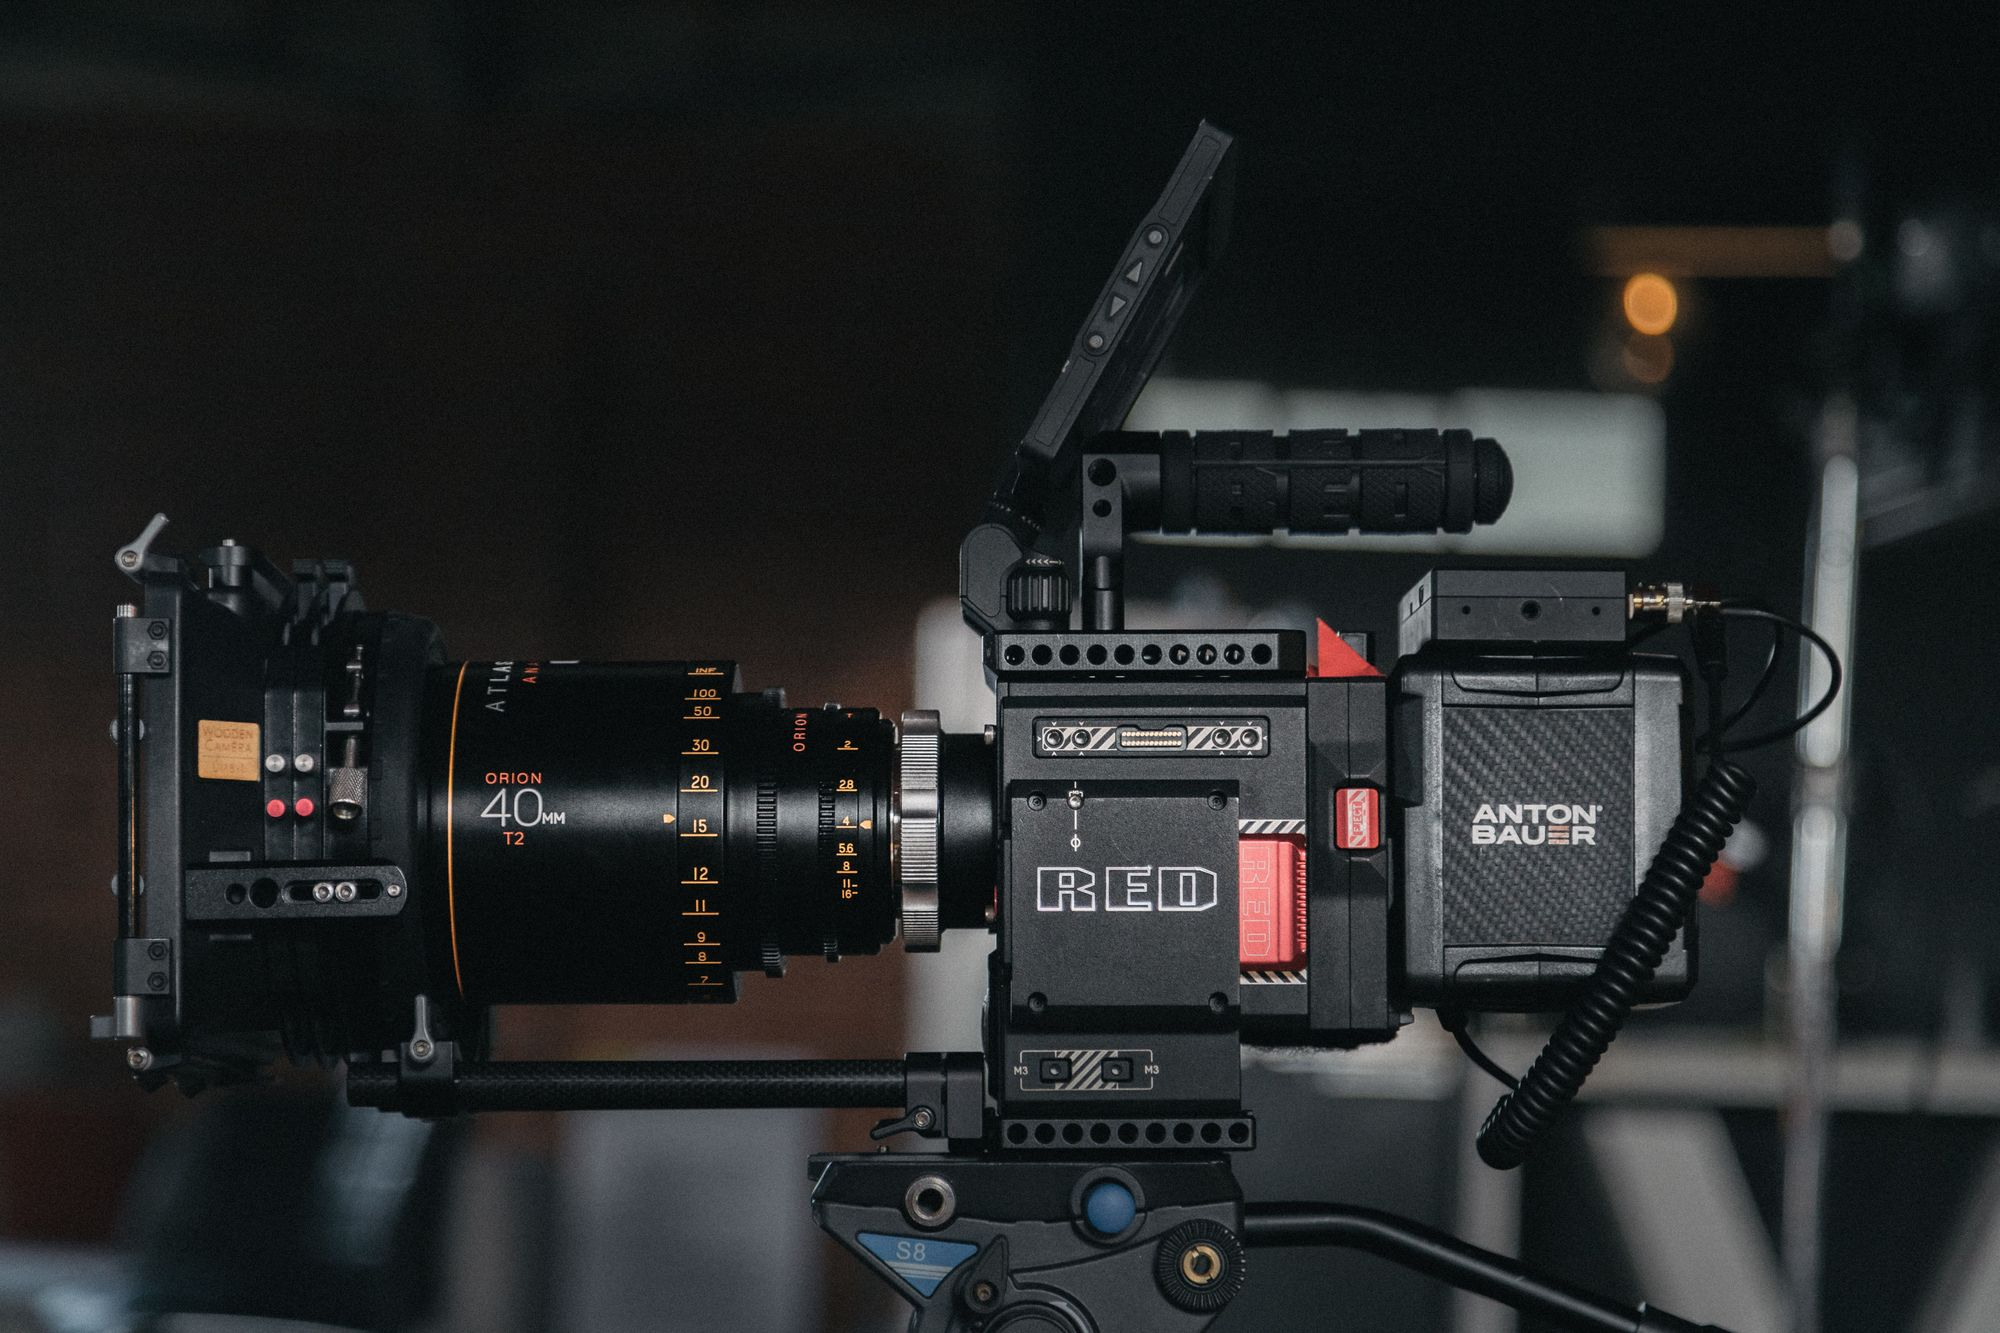 RED camera product history